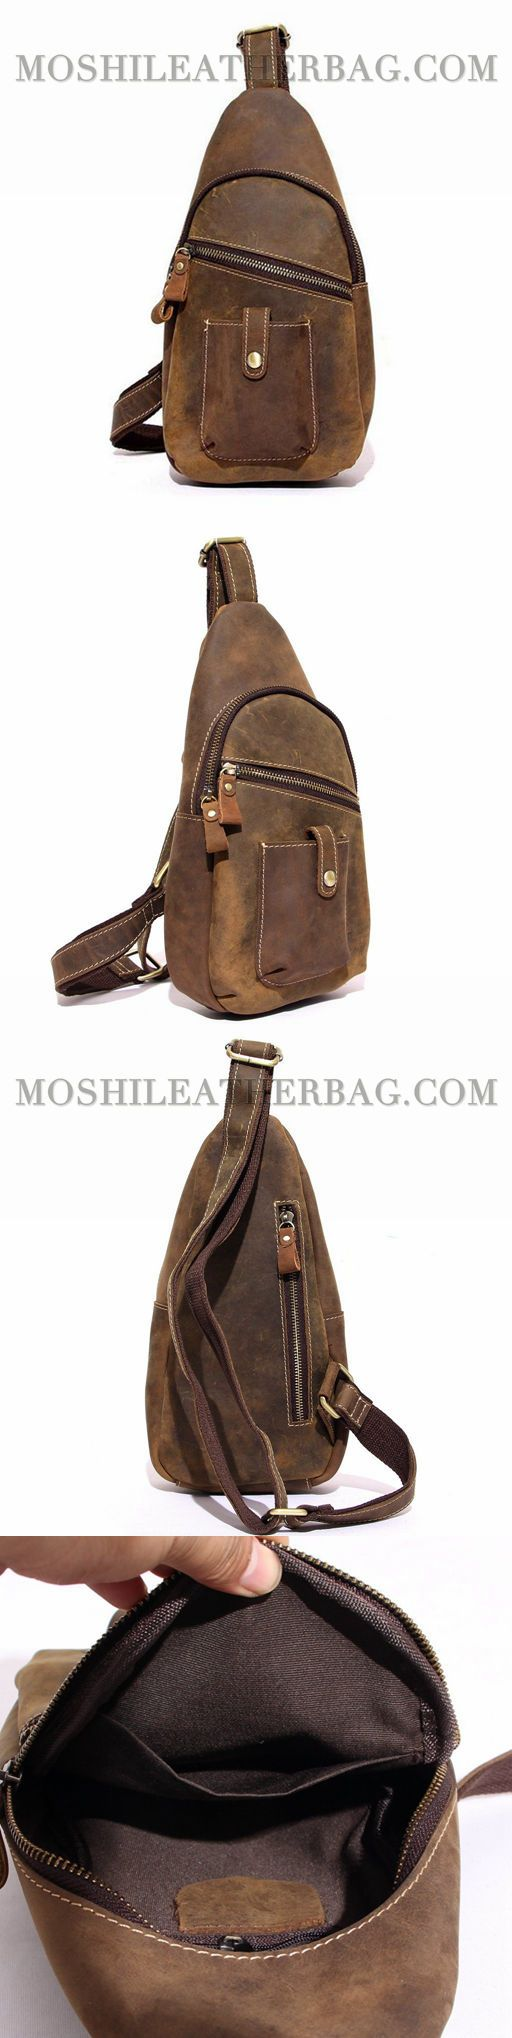 Handcrafted Vintage Top Grain Leather Travel Hiking Single Strap Shoulder Crossbody Backpack Chest Bags Sling Bag 8886